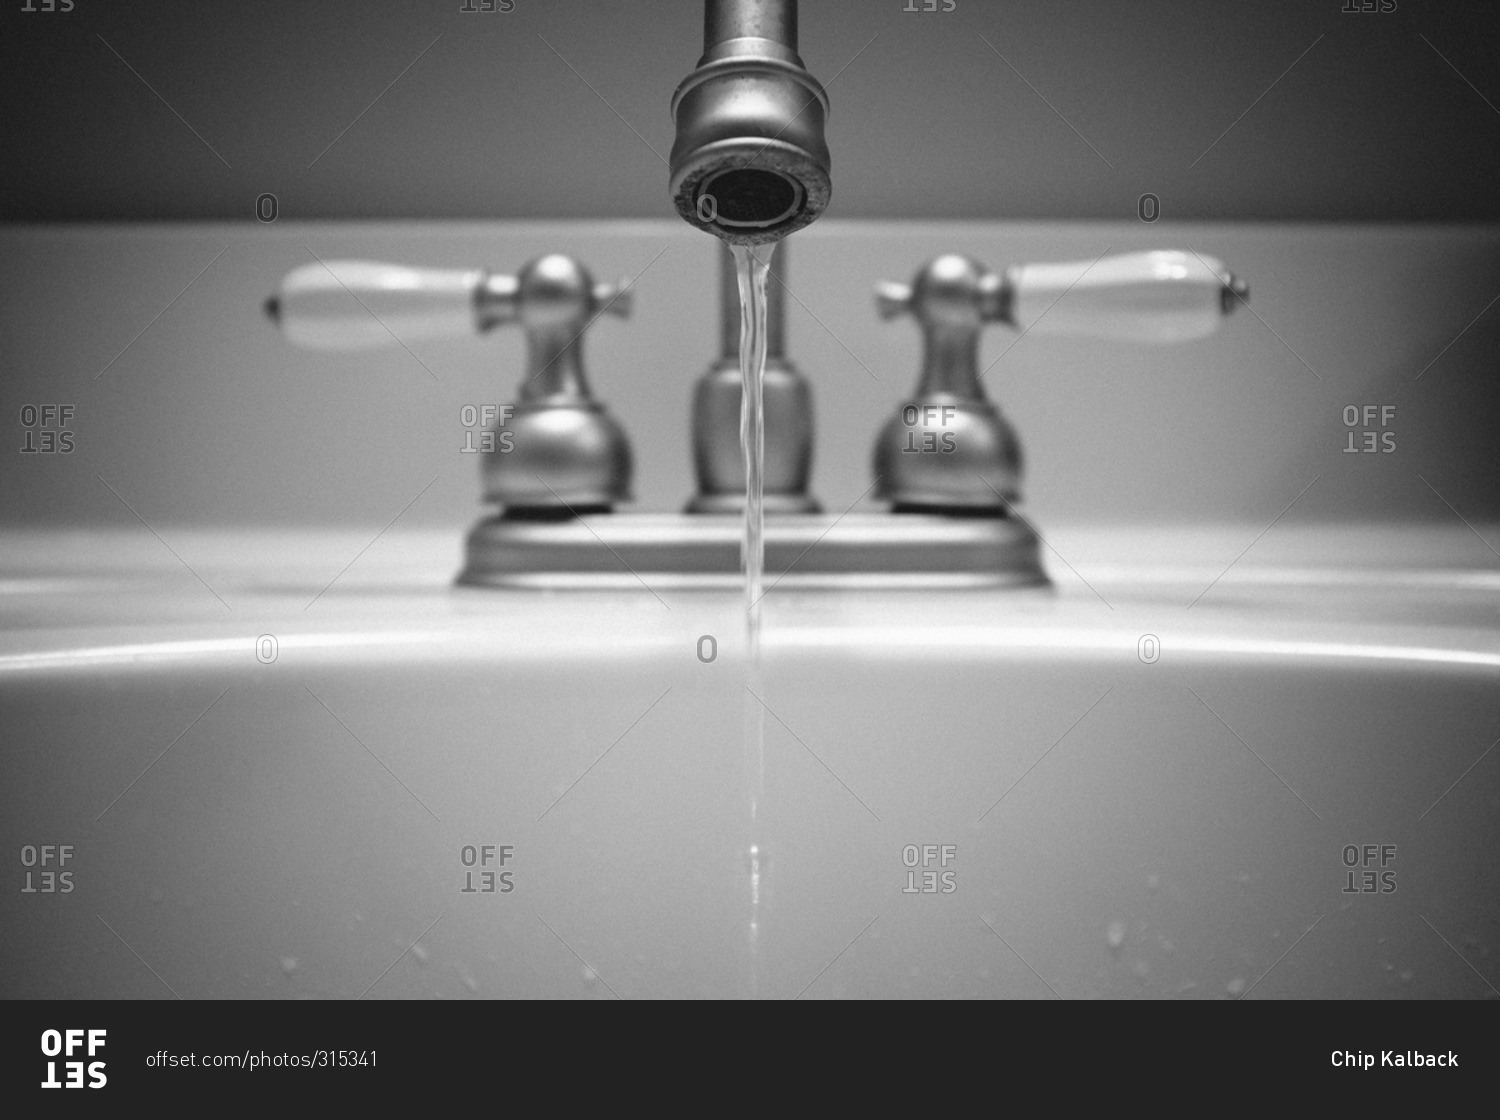 Water dripping from a bathroom sink faucet stock photo ...